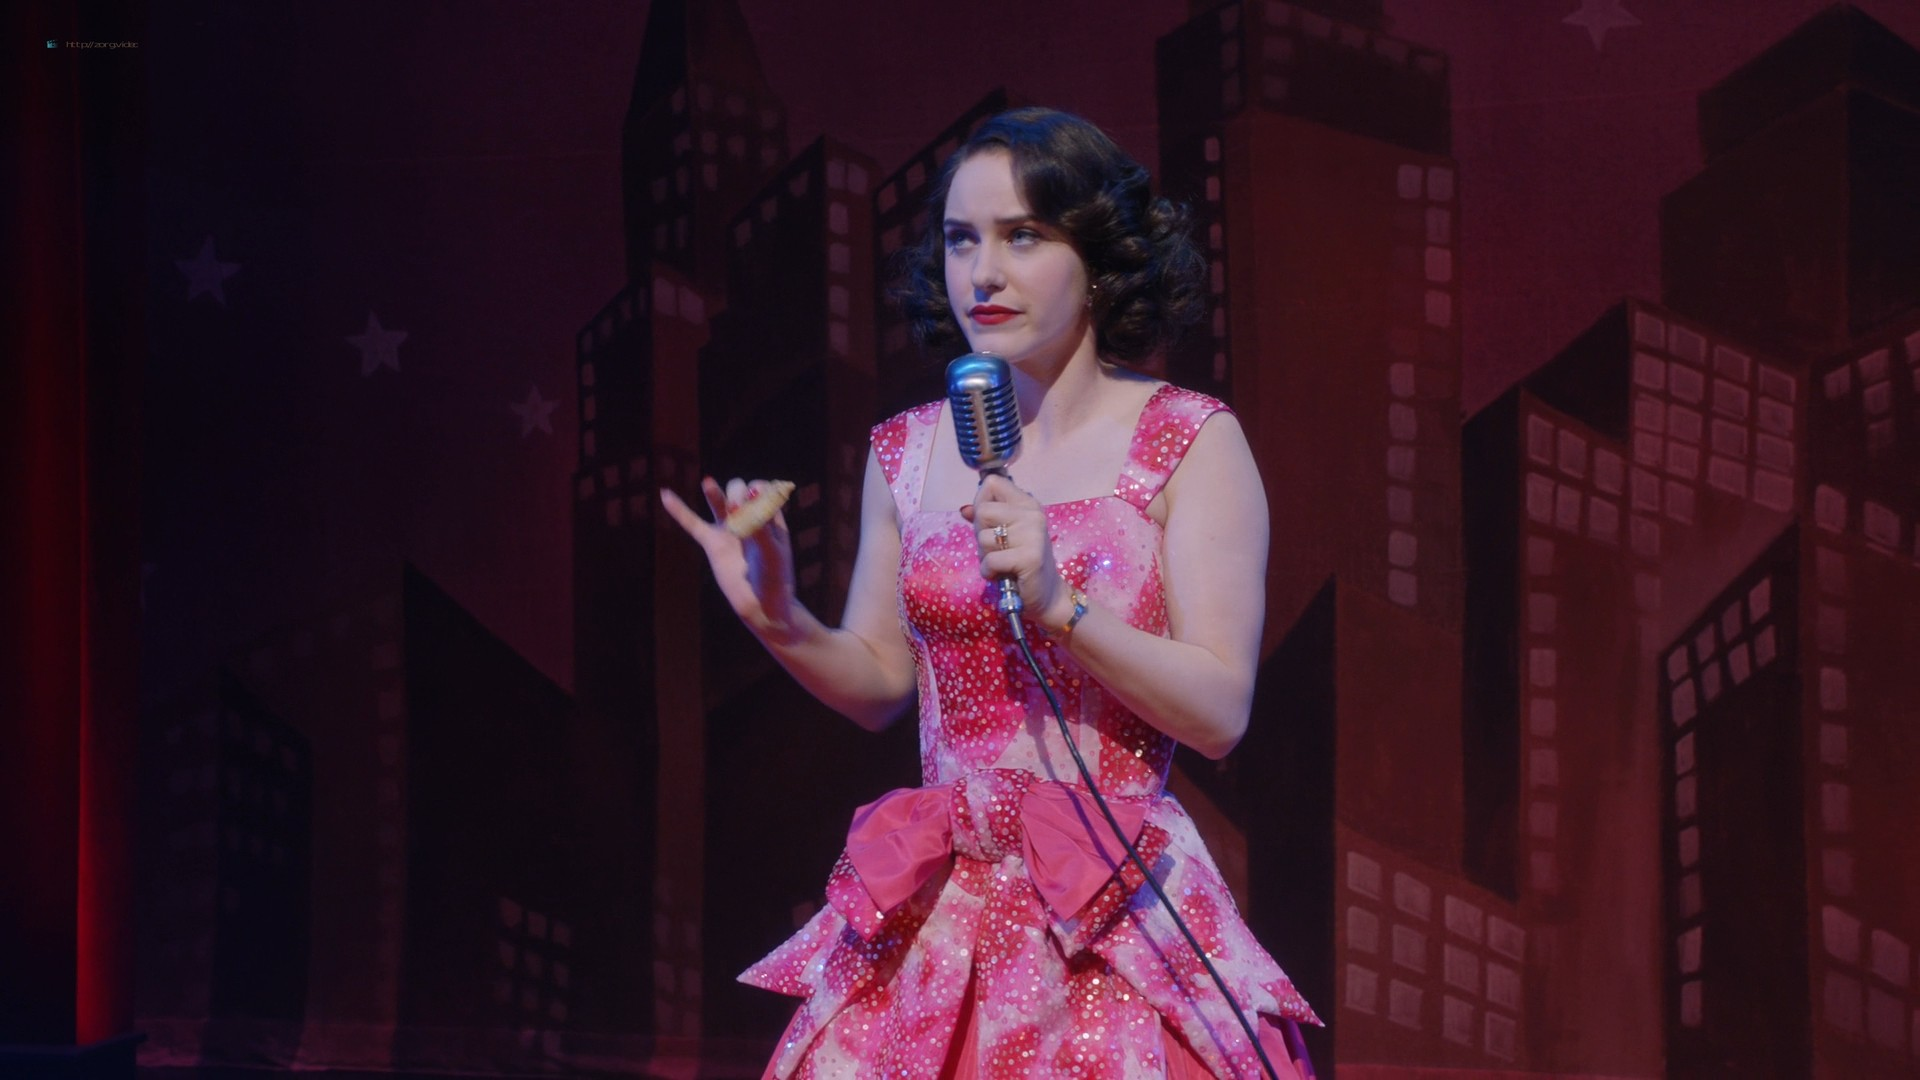 Rachel Brosnahan hot and sexy - The Marvelous Mrs. Maisel (2019) S3 HD 1080p (2)